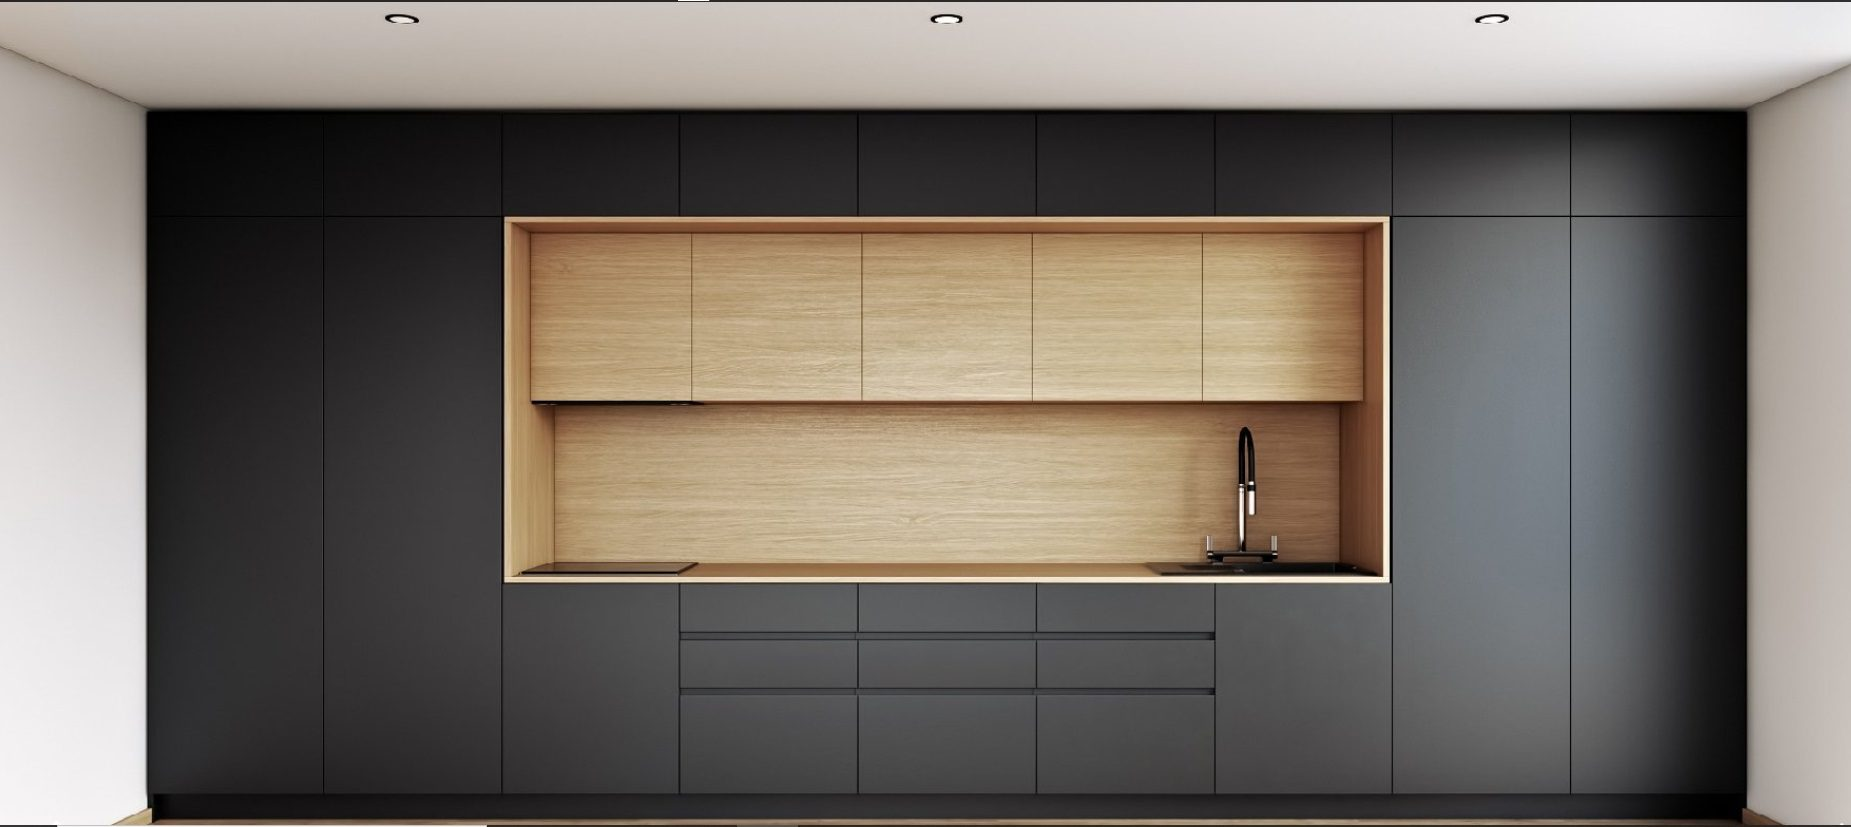 Fenix laminate premium kitchens